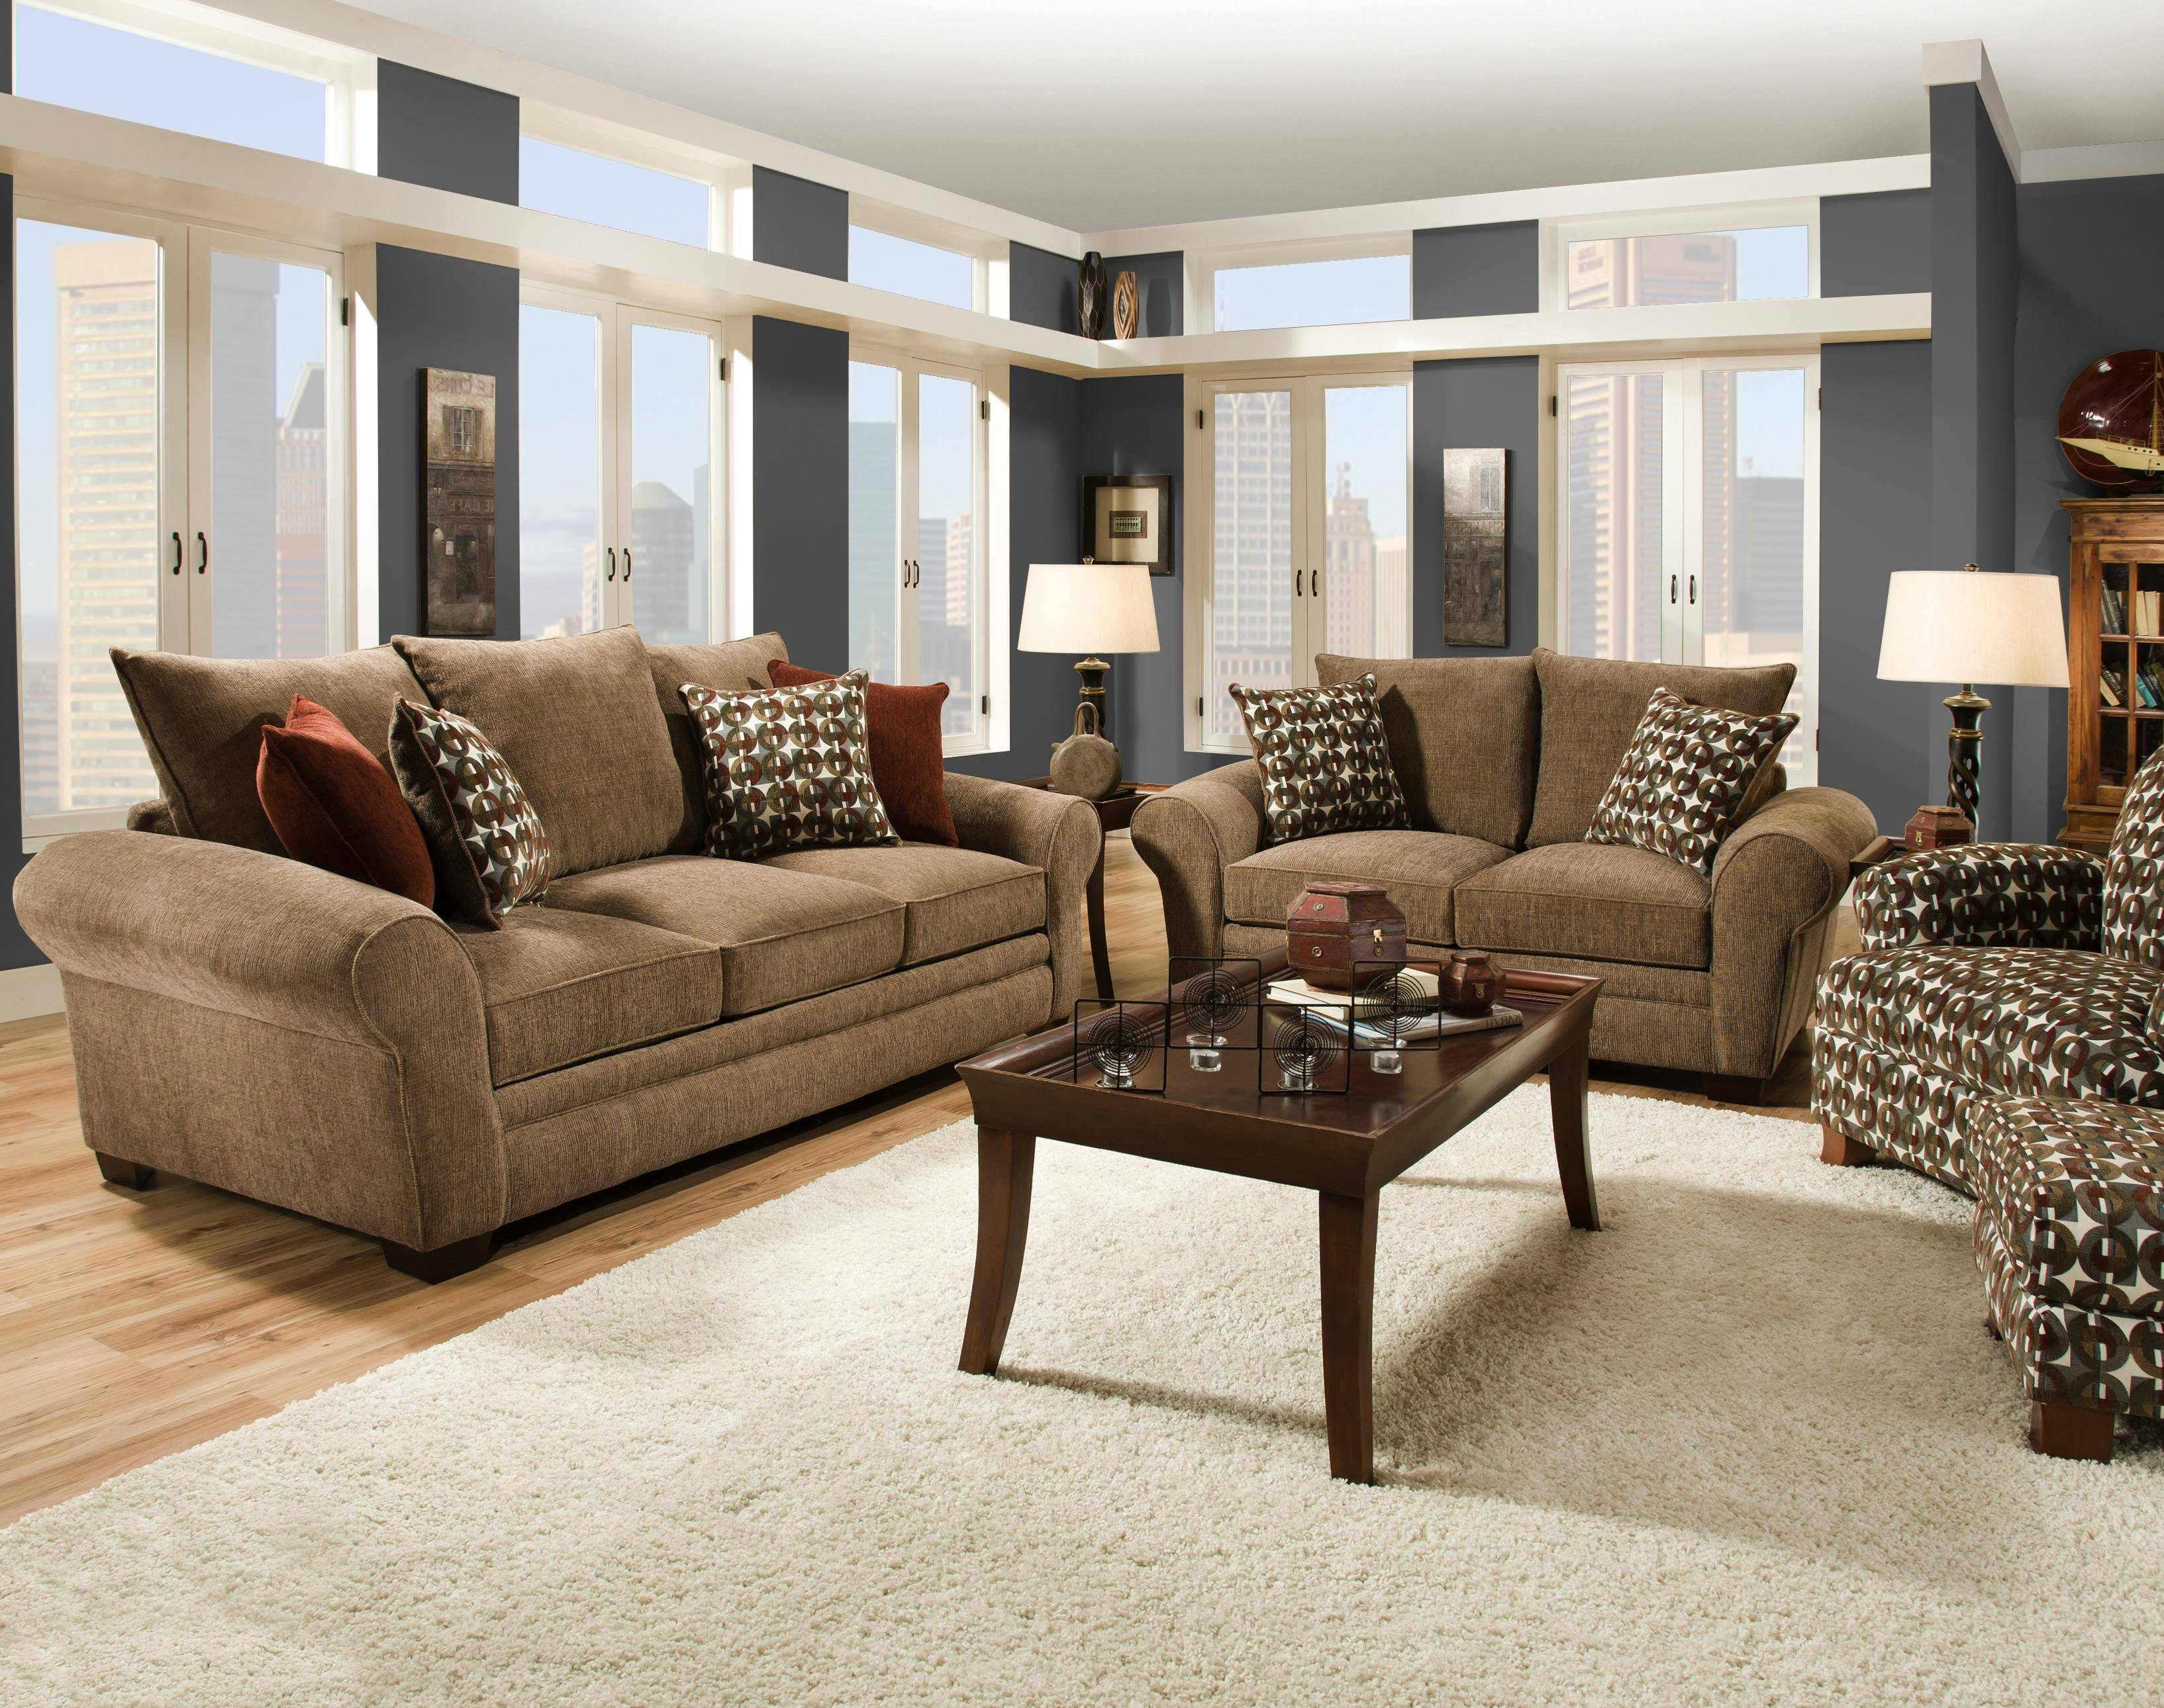 Elegant And Casual Living Room Sofa For Family Styled Comfort Pertaining To Casual Sofas And Chairs (View 11 of 15)